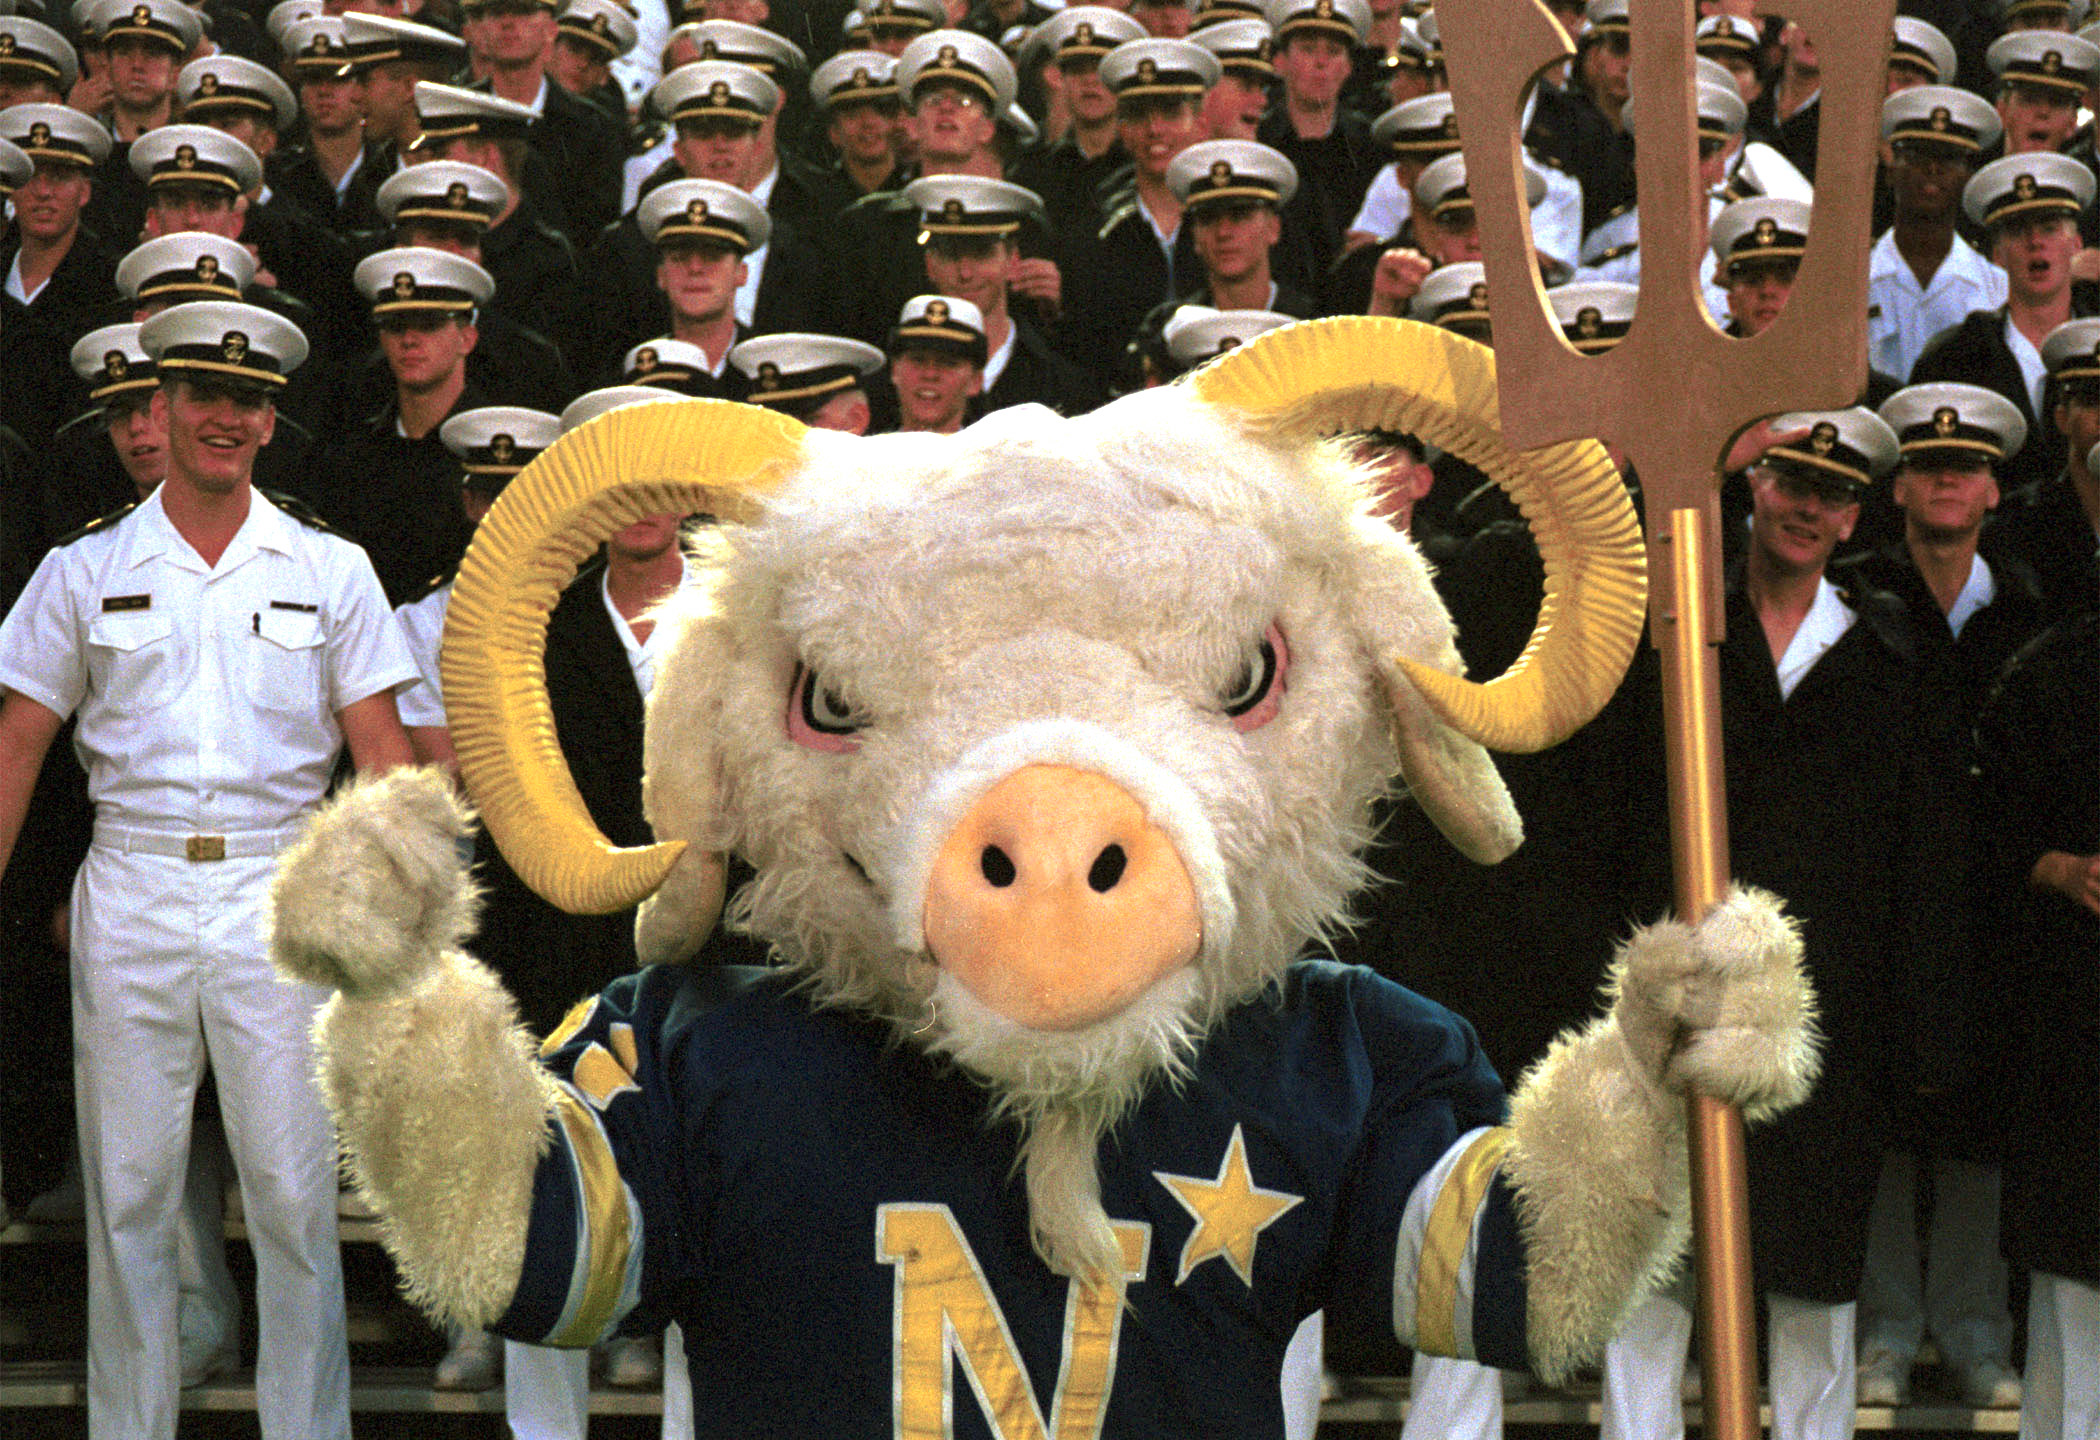 000902-N-9848G-002 U.S. Naval Academy, Annapolis, Md., (Sep. 2, 2000) Ð ÒBillÓ the U.S. Naval Academy mascot leads the cheering section of Midshipmen, during the AcademyÕs opening game against Temple at Navy Marine Corps Memorial Stadium in Annapolis, MD. U.S. Navy photo by Lieutenant Junior Grade John Gay. (RELEASED)